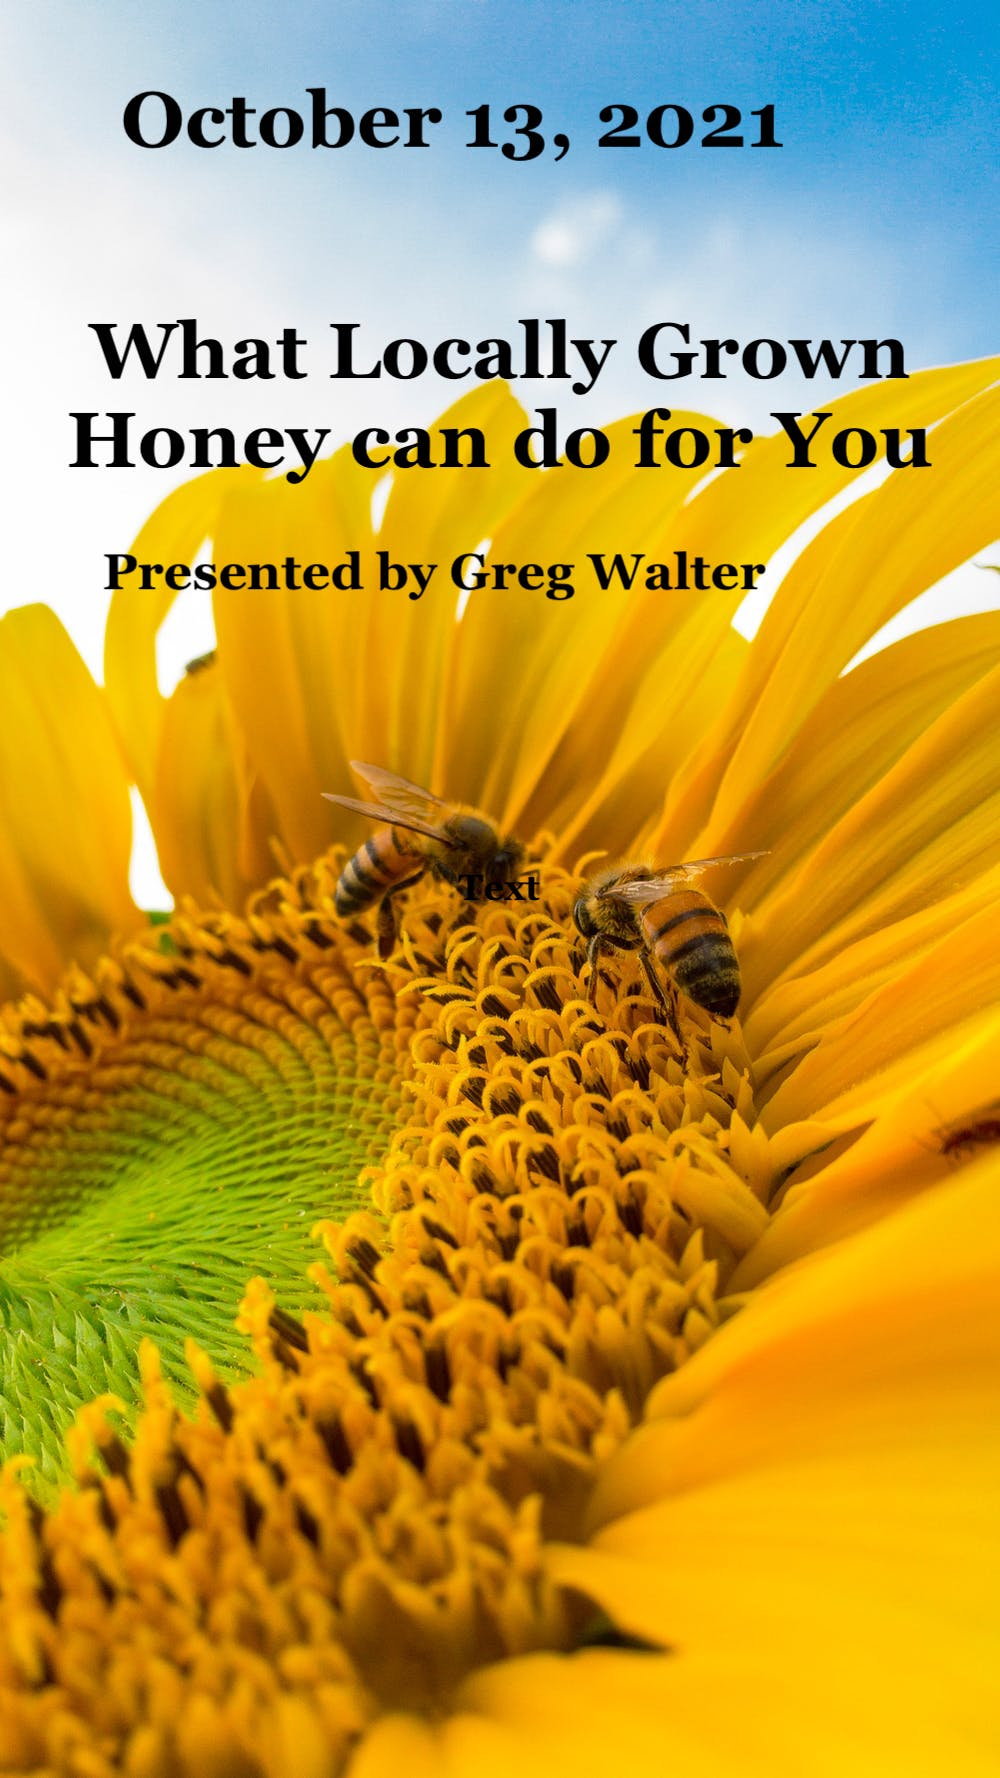 October 13, 2021  What Locally Grown Honey can do for You, Greg Walter